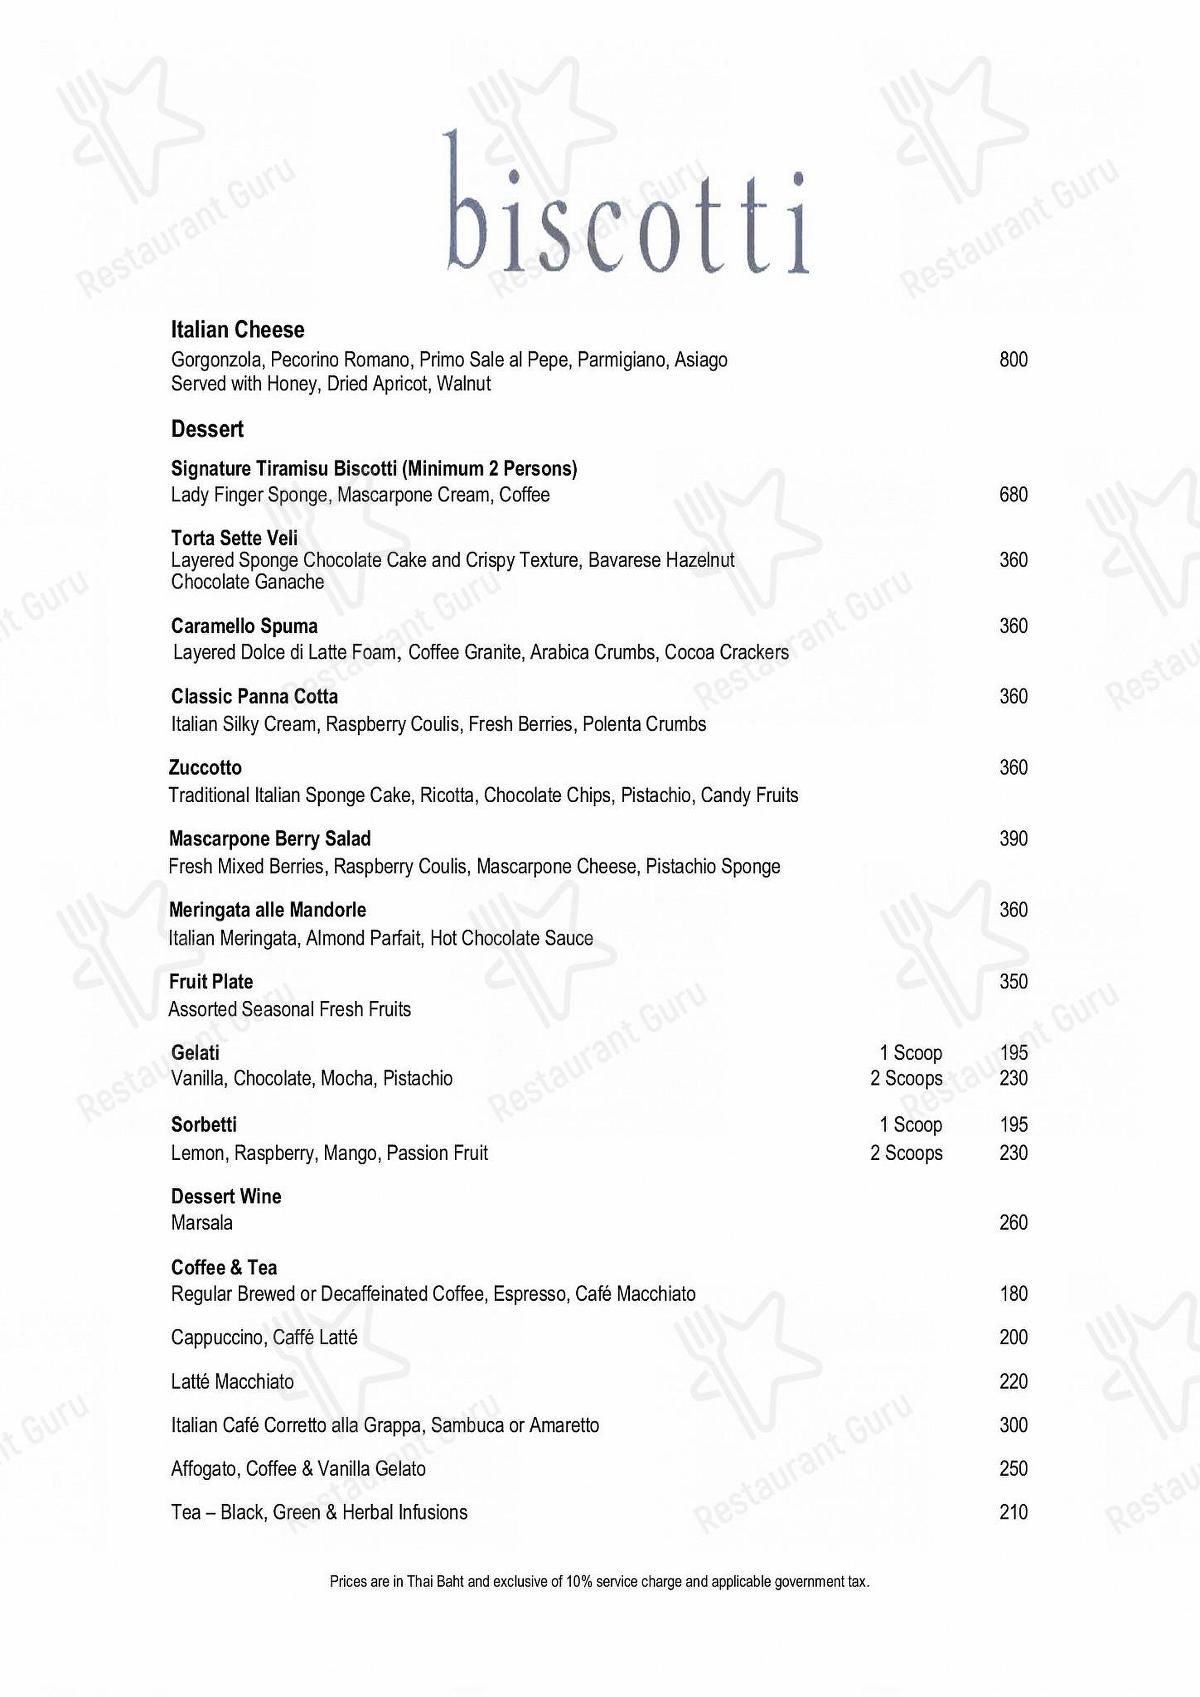 Biscotti menu - dishes and beverages